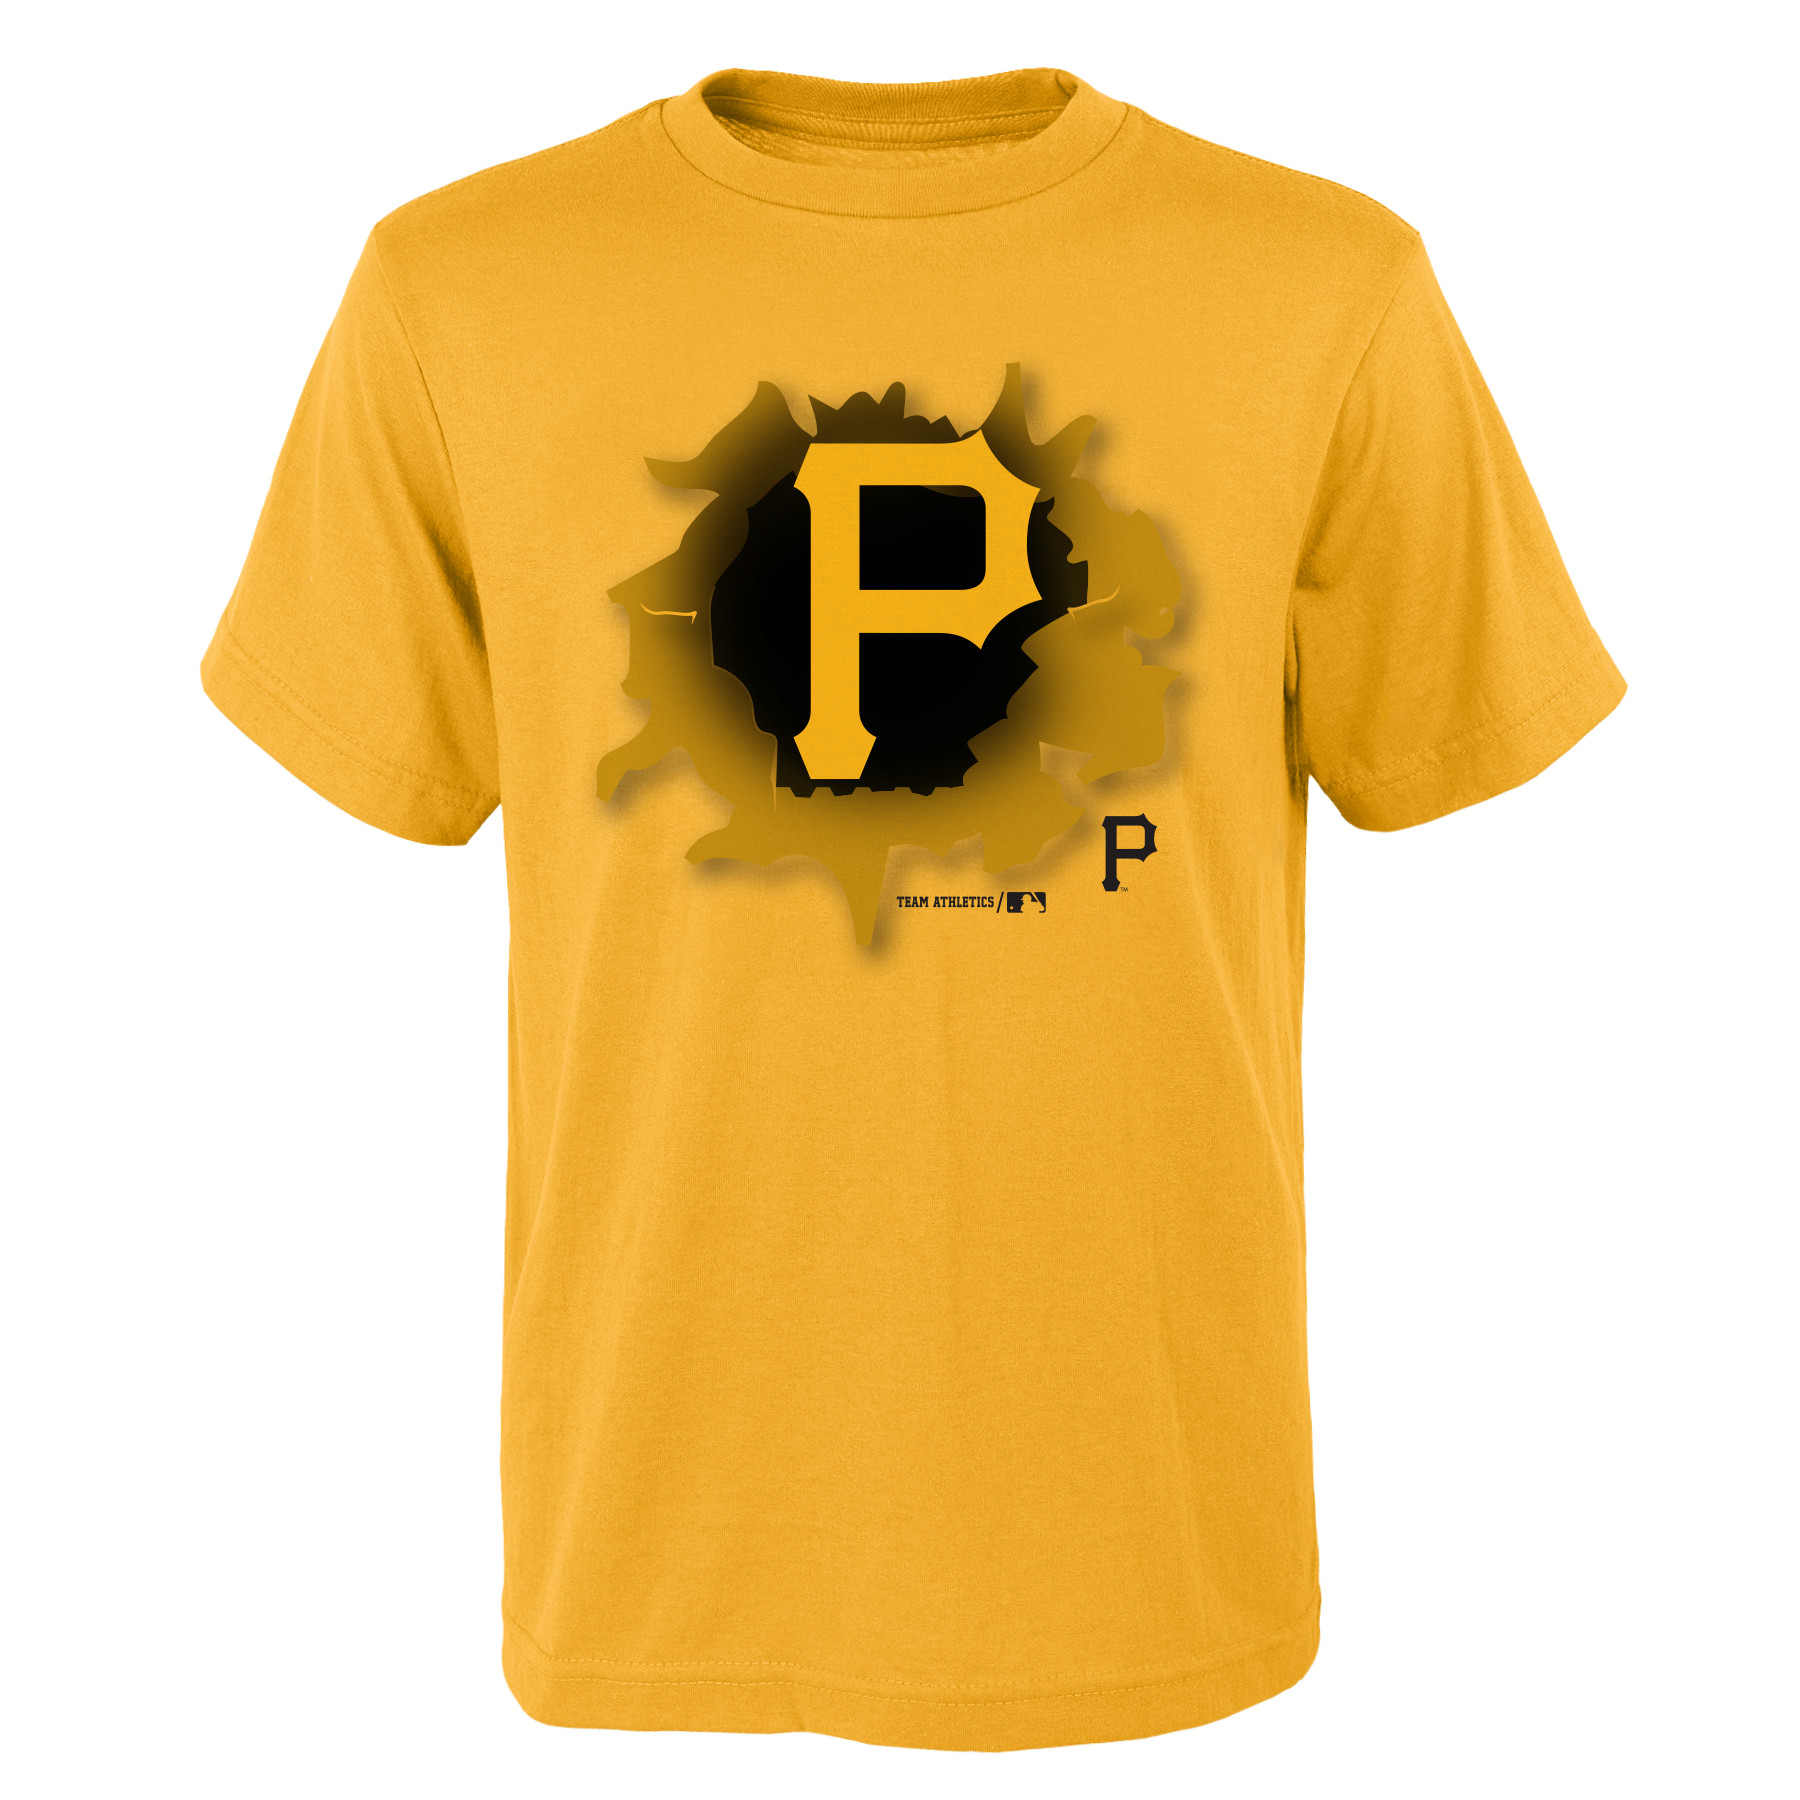 MLB Pittsburgh PIRATES TEE Short Sleeve Boys OPP 100% Cotton Alternate Team Colors 4-18